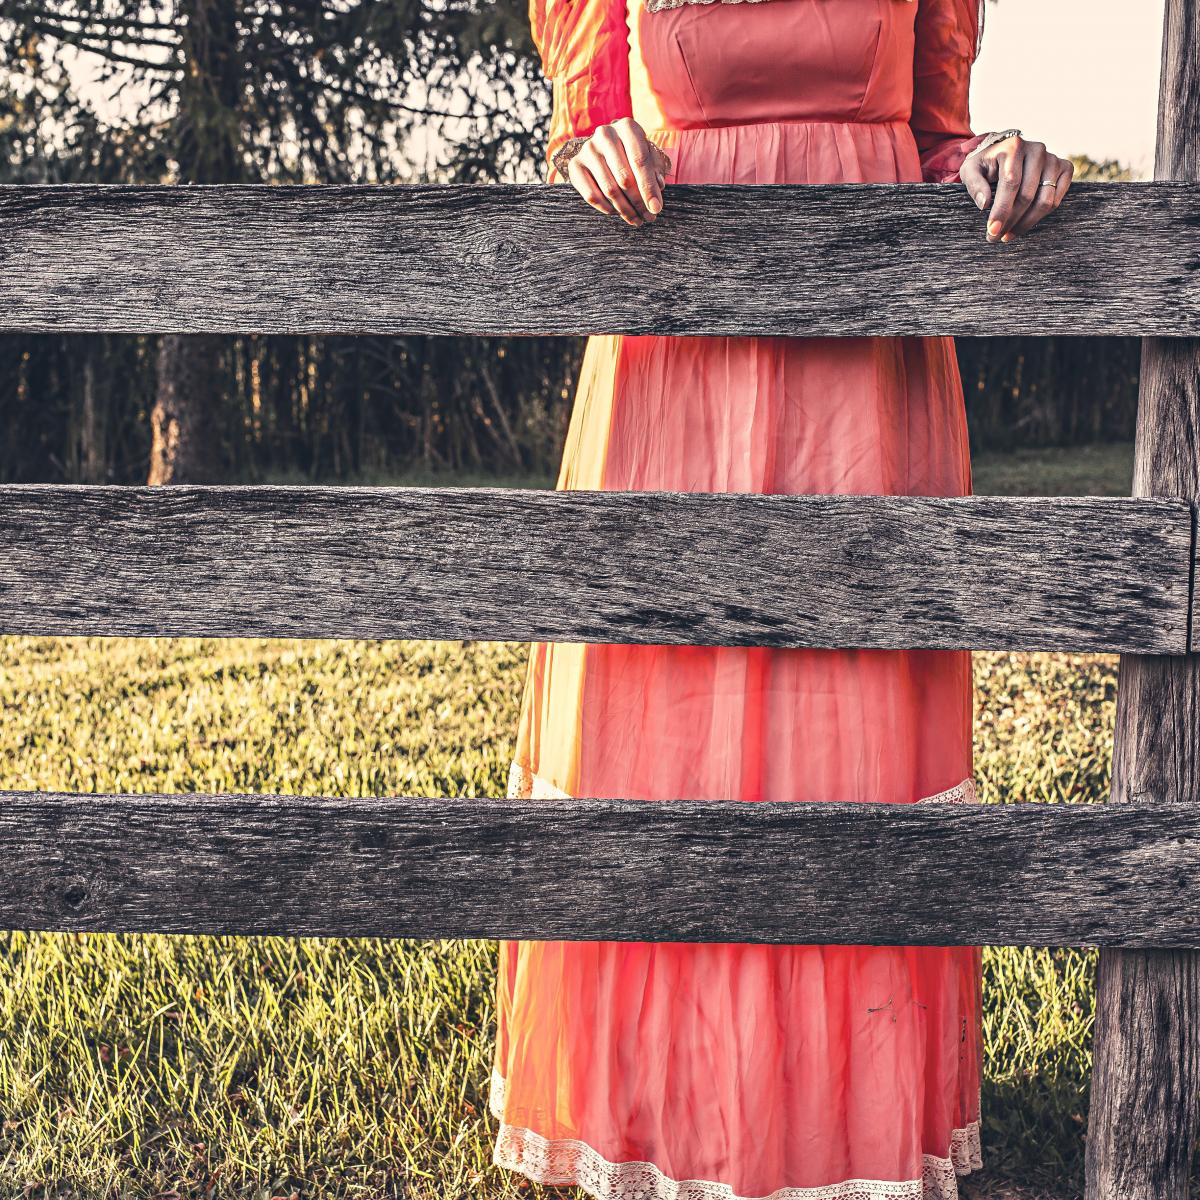 Color photo of a thin woman from her midsection to her feet, wearing a full length peach dress with yellow on the sides, standing behind three horizontal beams of an aged wooden fence spaced about a foot apart. Stock photo courtesy of Gratisography.com